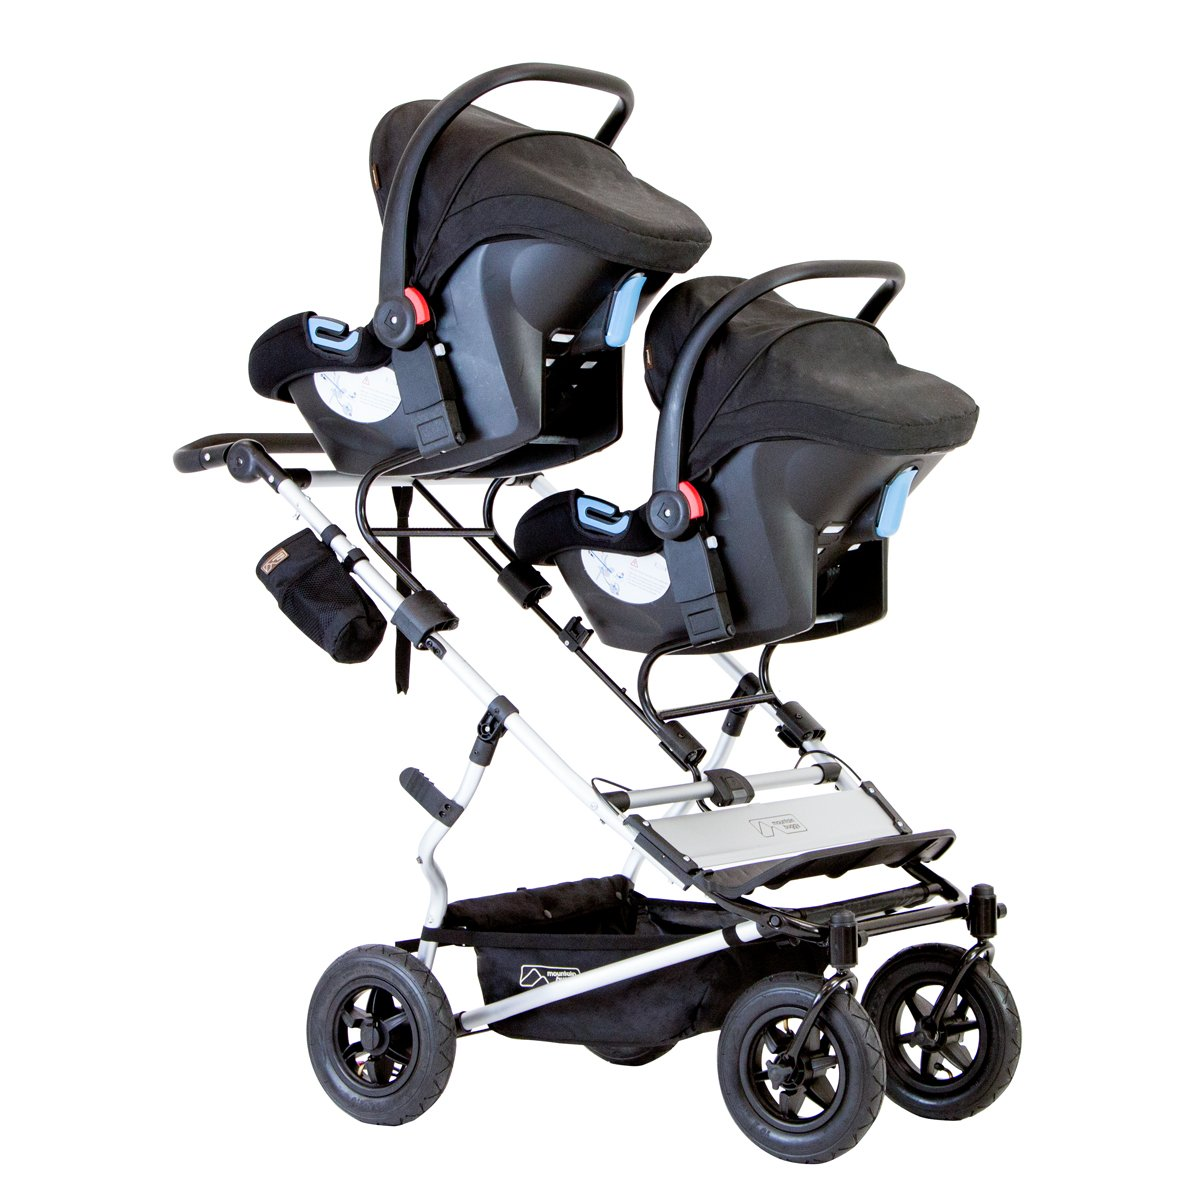 Mountain Buggy Duet 2016 Double Stroller, Black by Mountain Buggy (Image #4)